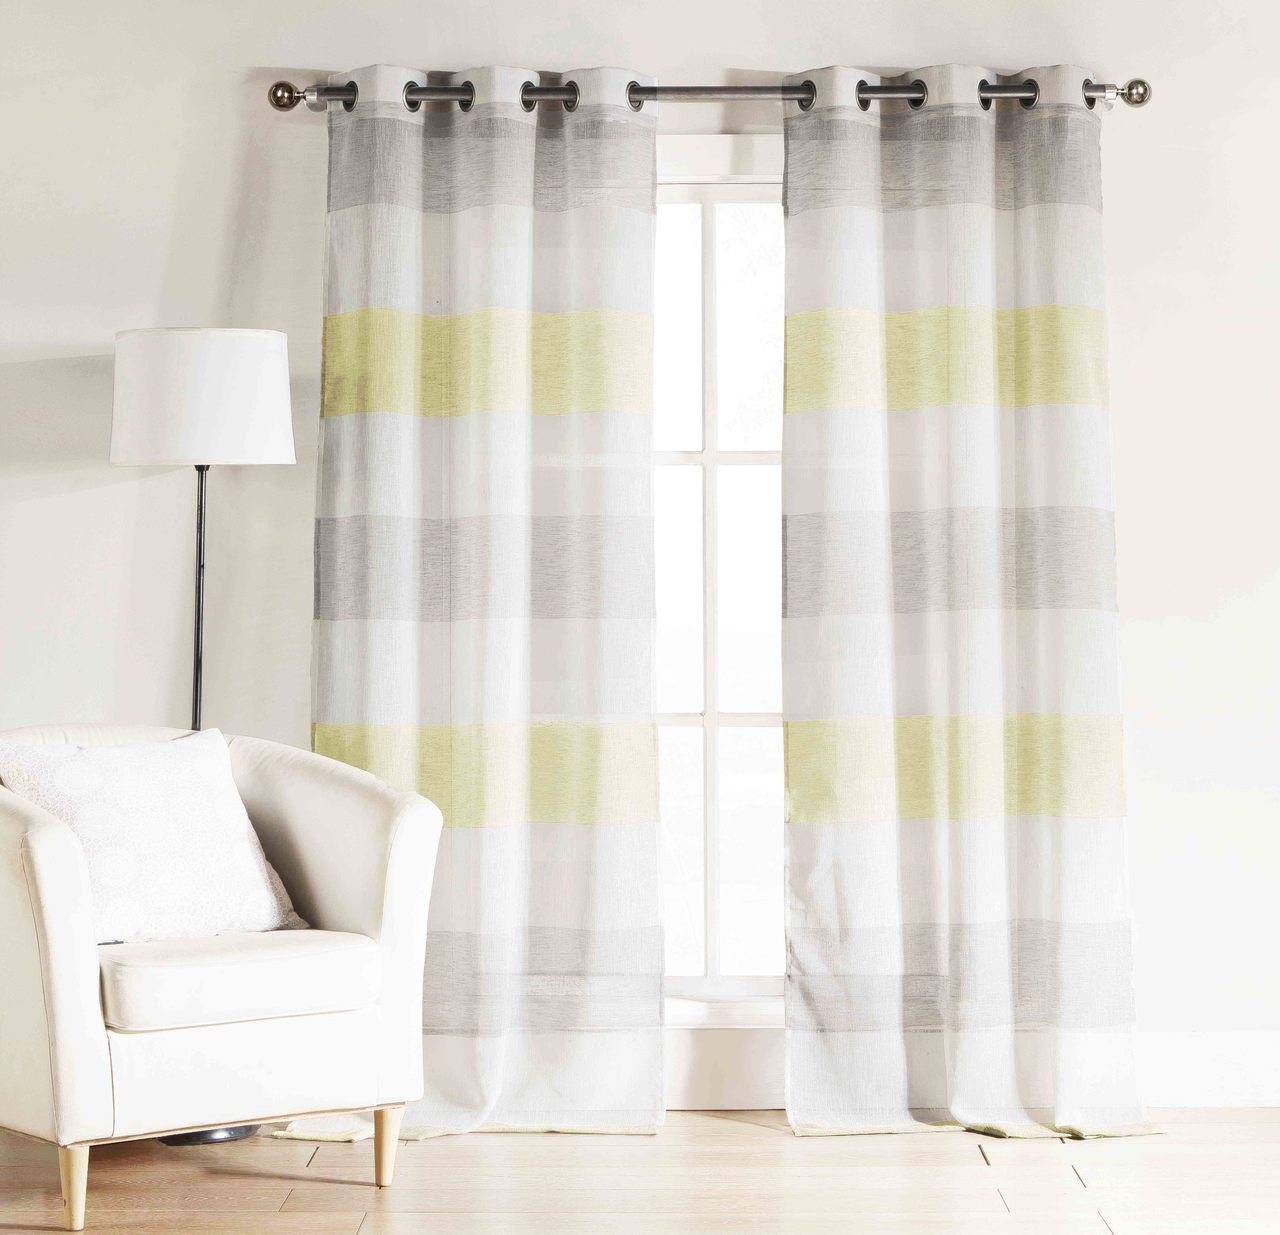 Bathroom And More Set Two 2 Gray Yellow White Sheer Window Curtain Panels Cabana Stripe Grommets Panel Pair 2 96 Long My Infinity Store